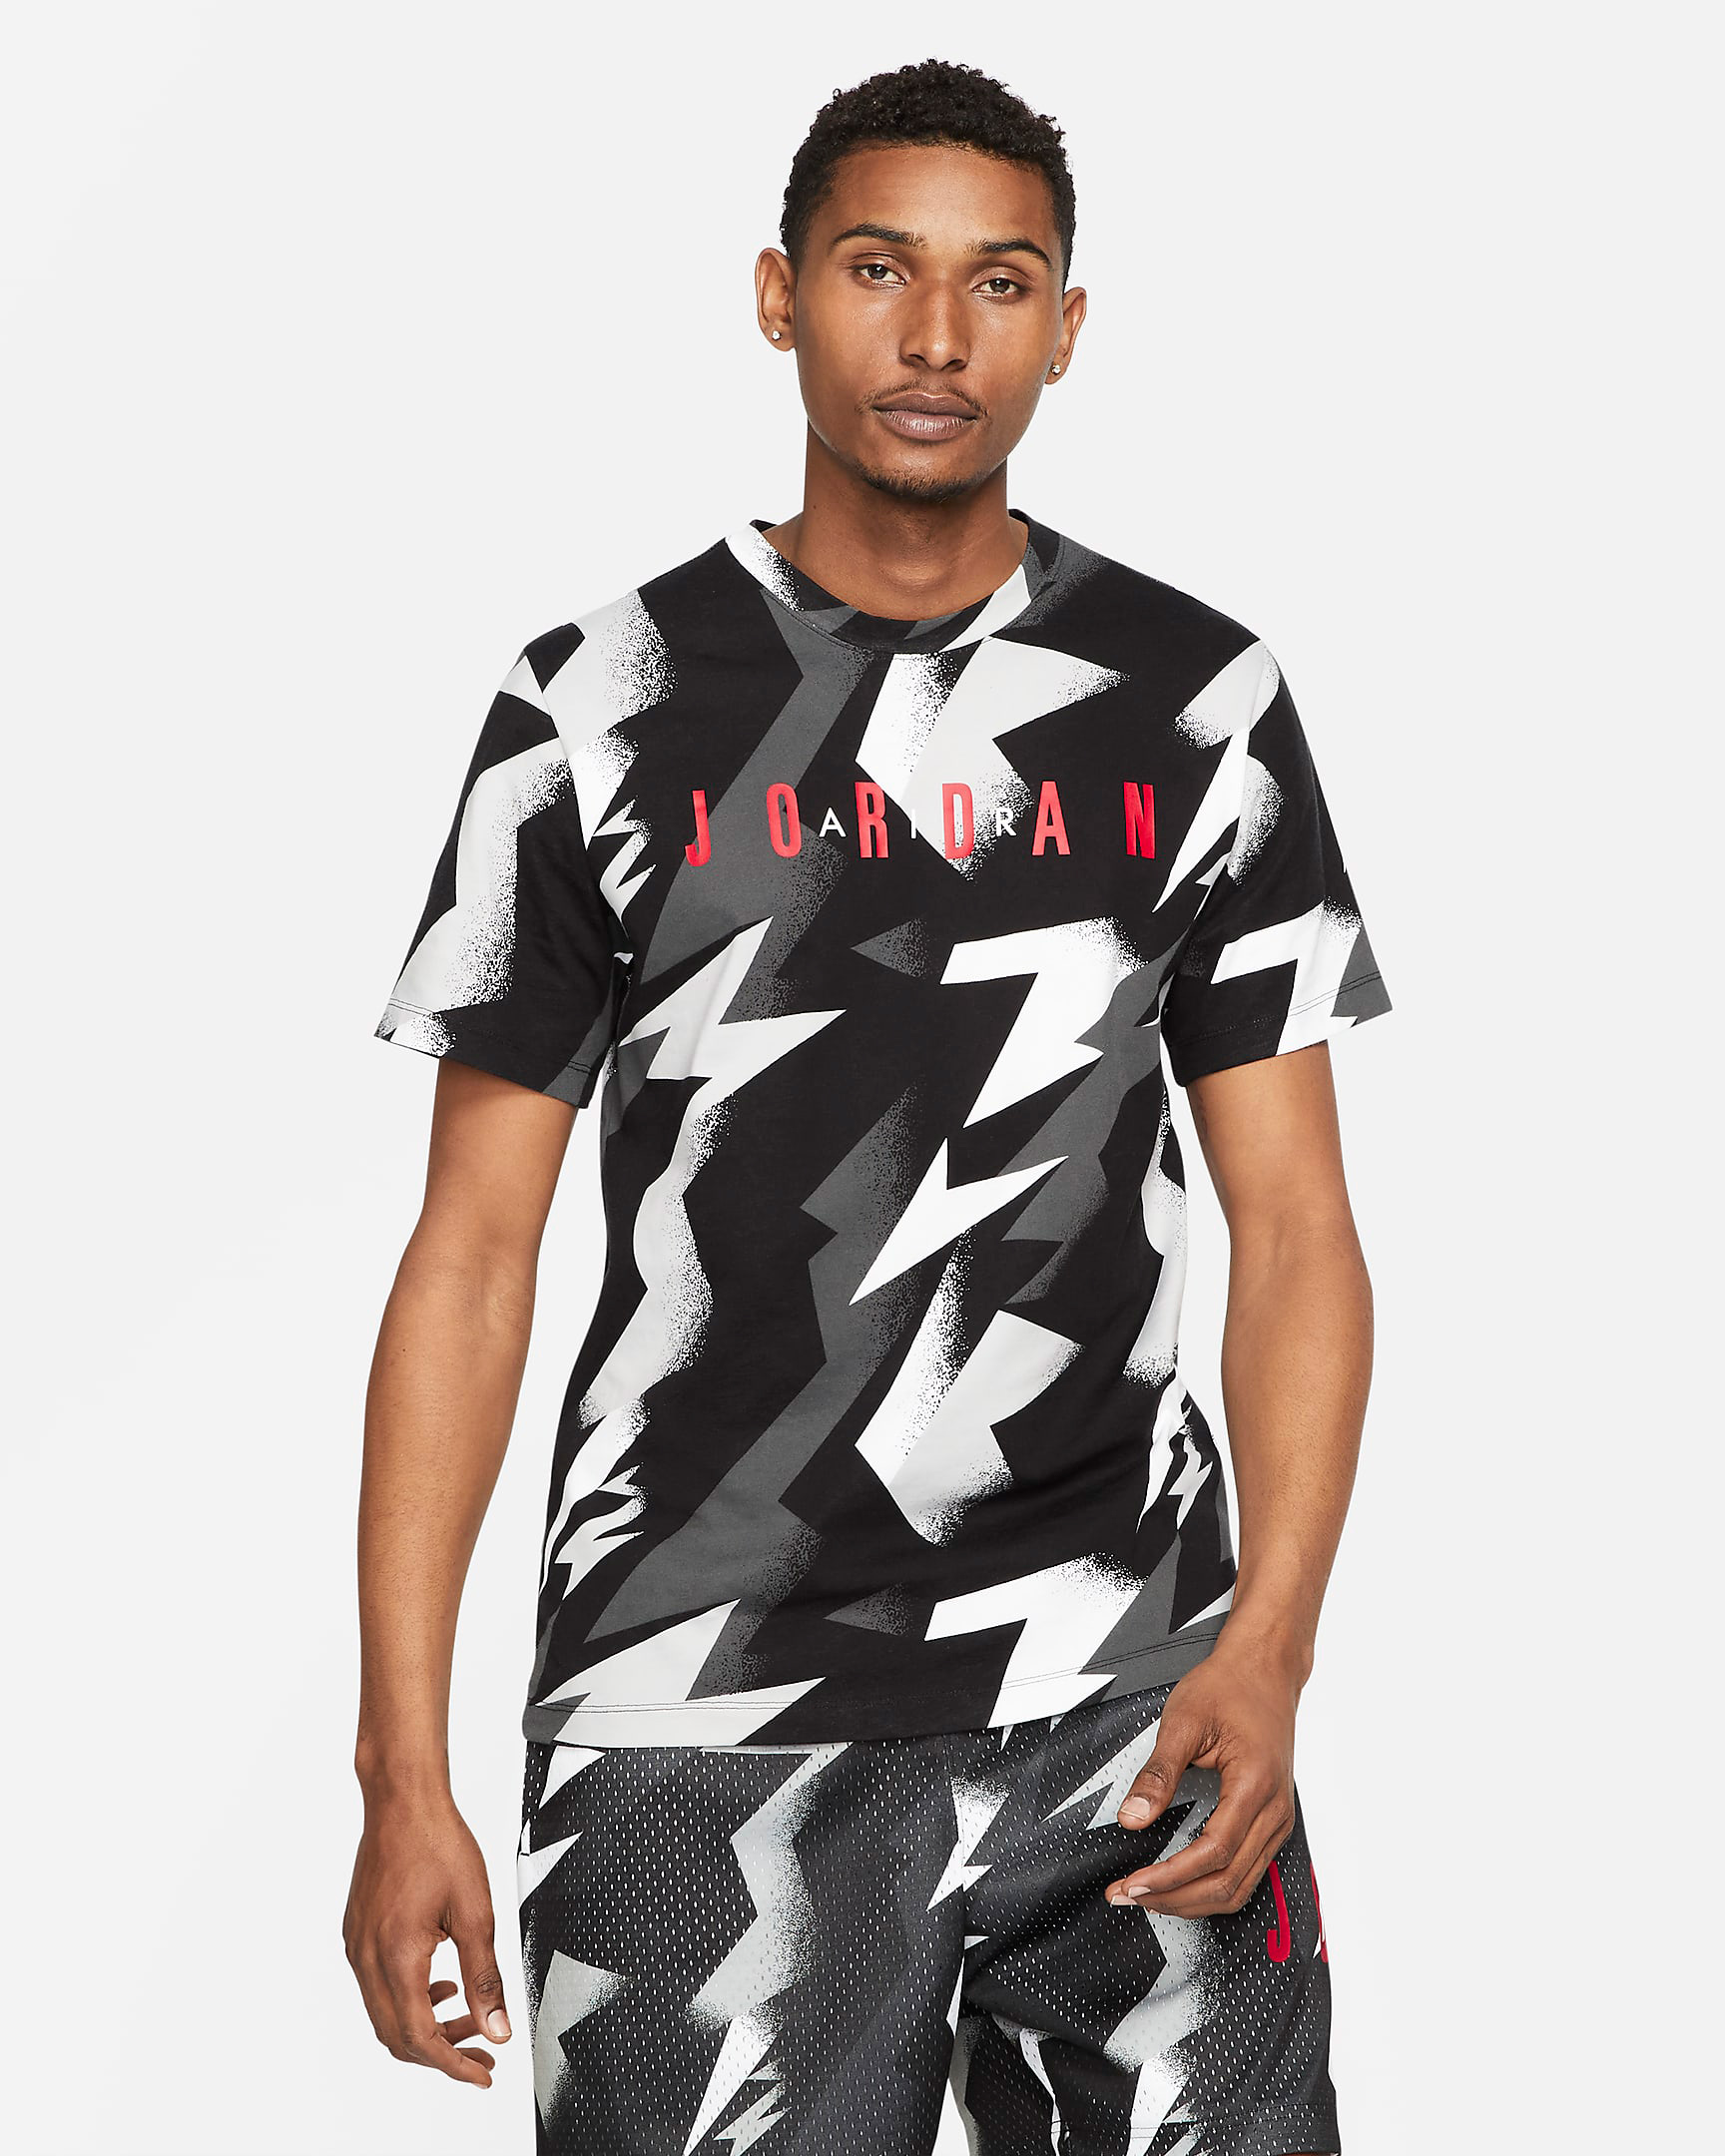 jordan-jumpman-air-printed-shirt-summer-2021-black-white-grey-red-2